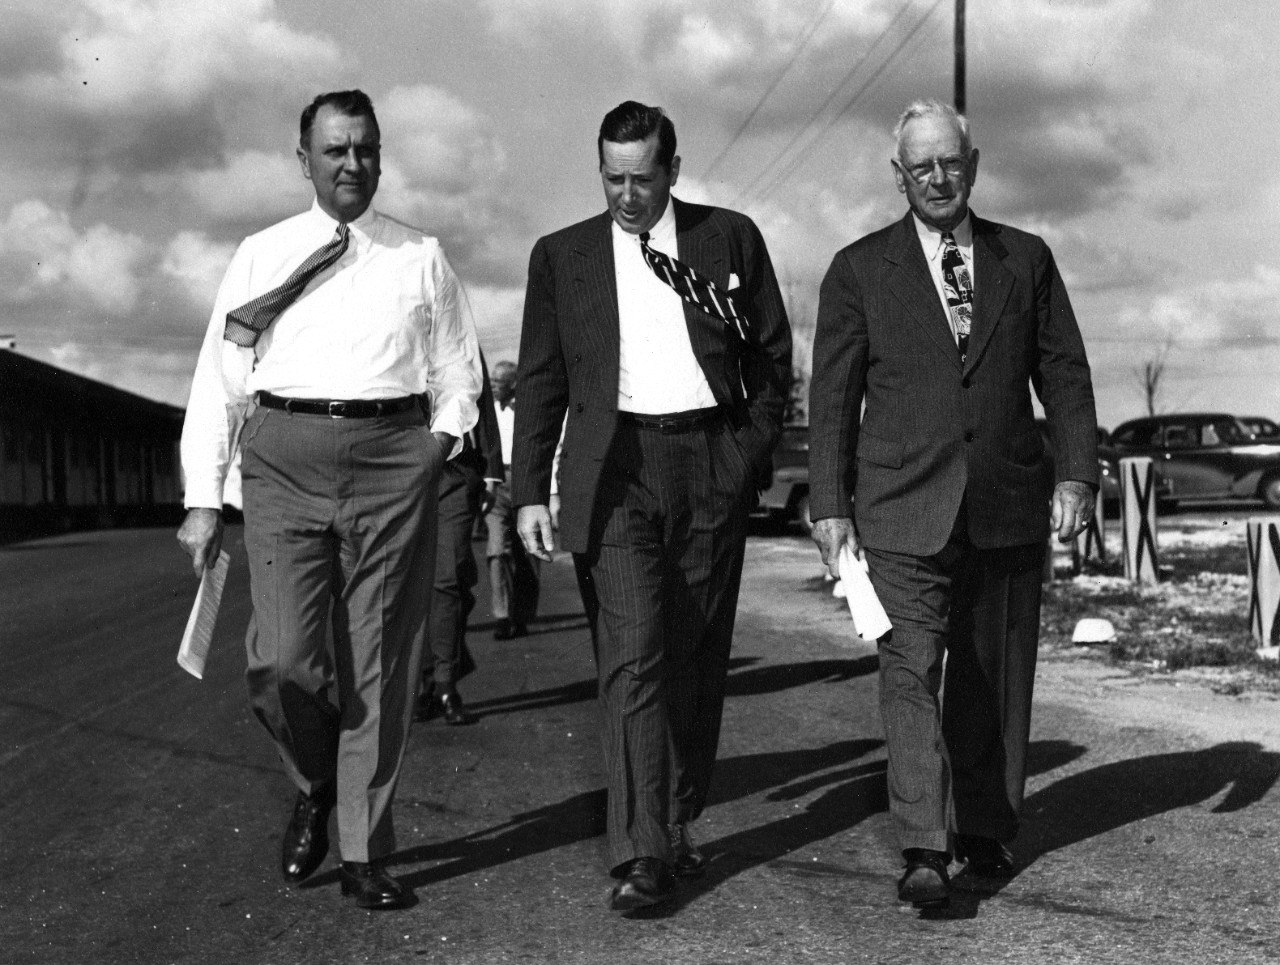 Admiral William H. Standley, USN (Ret) (at right), walks with head of Pan Am Juan Trippe (at left) and an unidentified man, likely in Miami. Original photo by Pan American World Airways Public Relations.